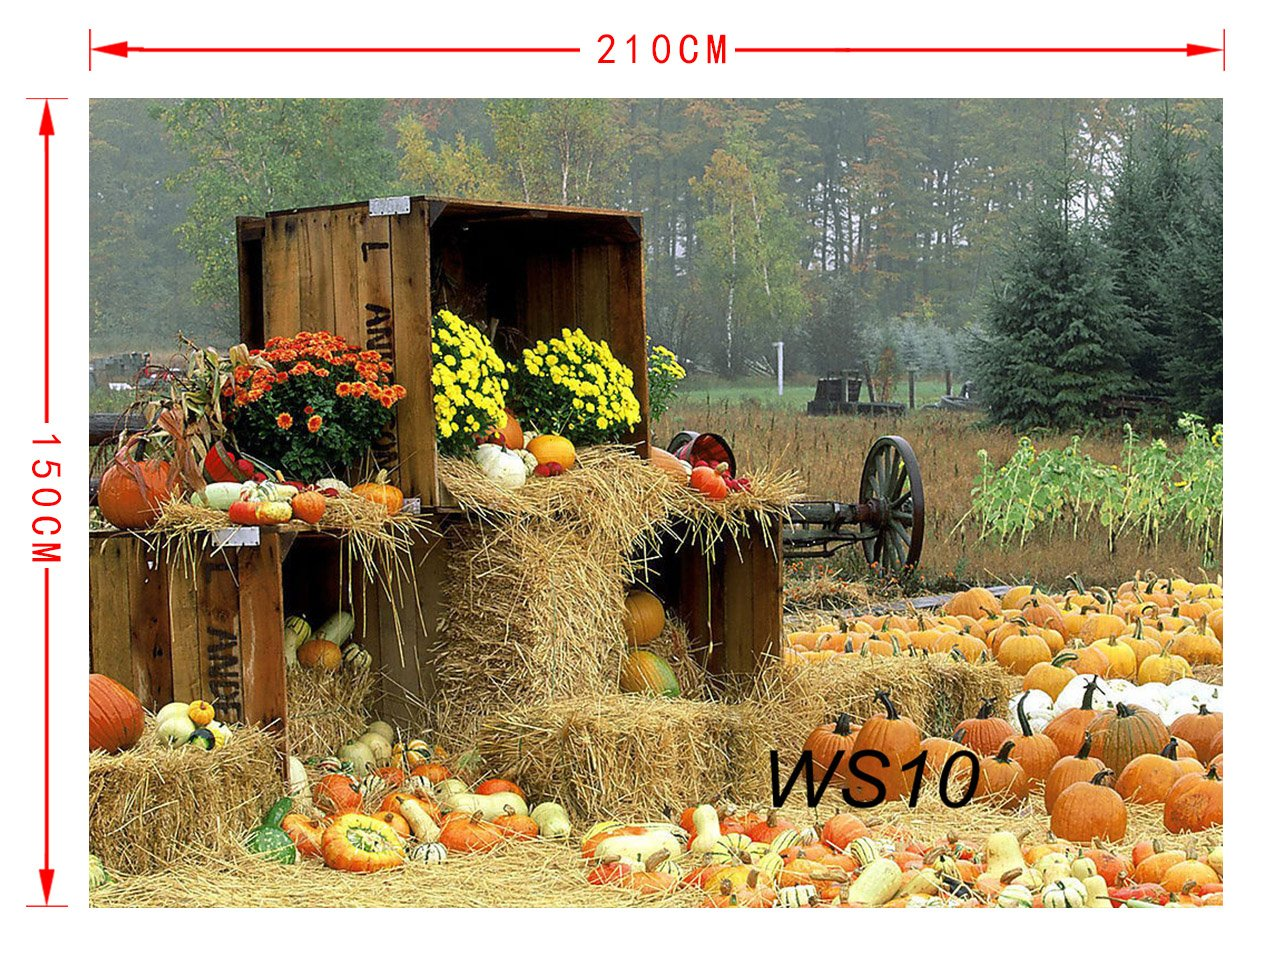 LB Halloween Pumpkin Backdrop for Photography 7x5ft Vinyl Rustic Farm Harvest Season Fall Backdrop for Party Event Portrait Photo Booth Background by LB (Image #2)